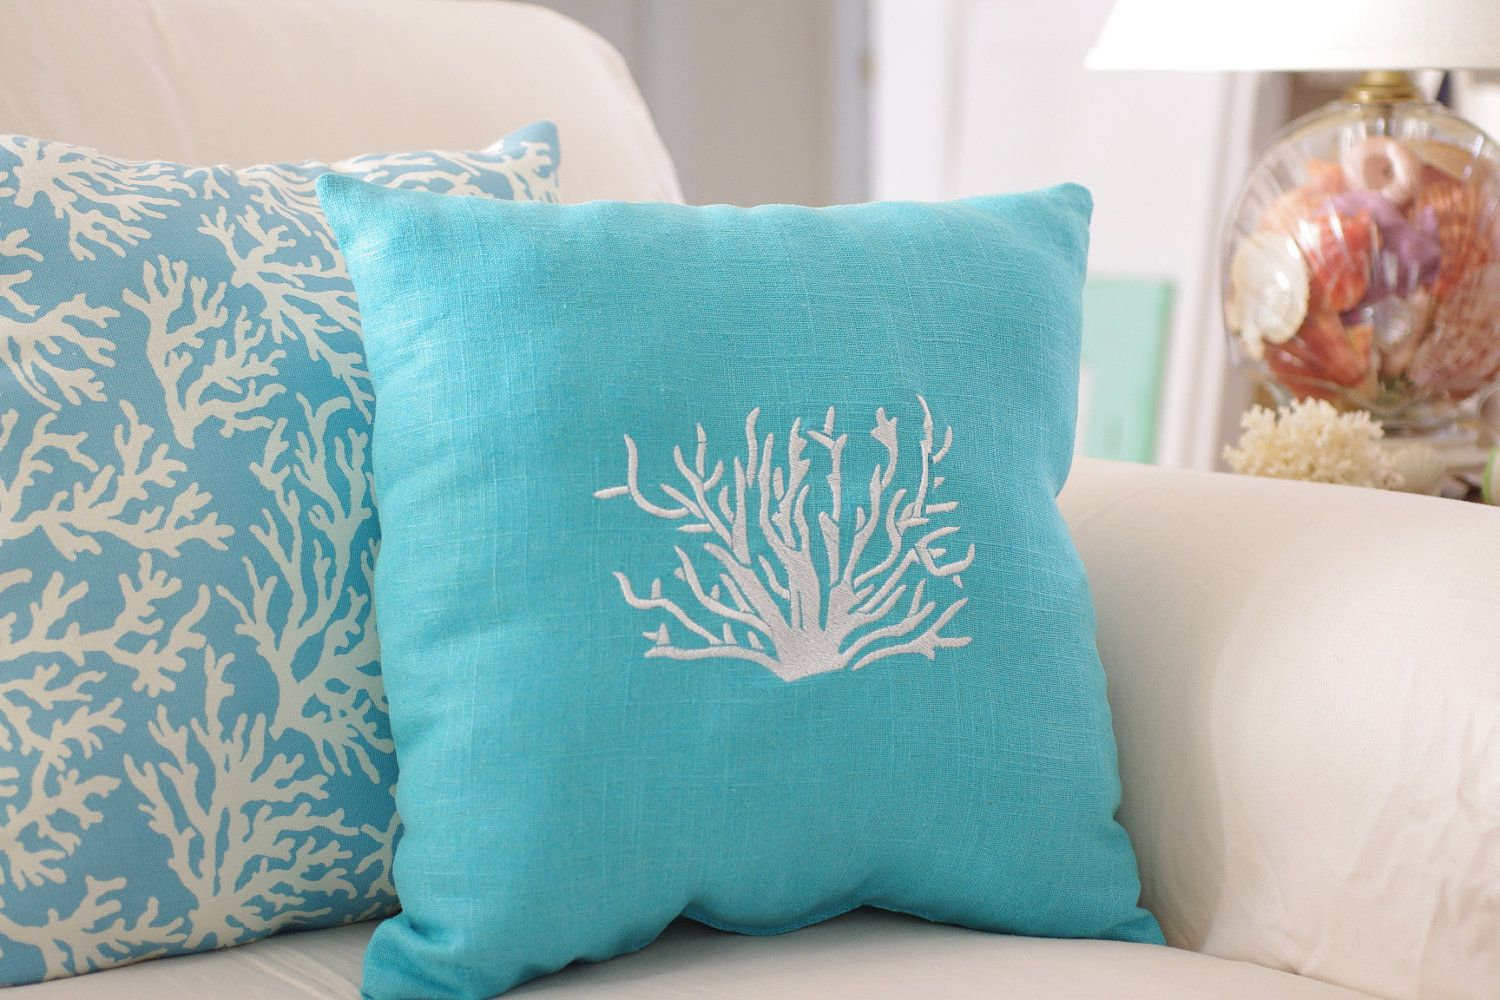 soon coastal pillows south accessories new beach pillow and coming pin home living